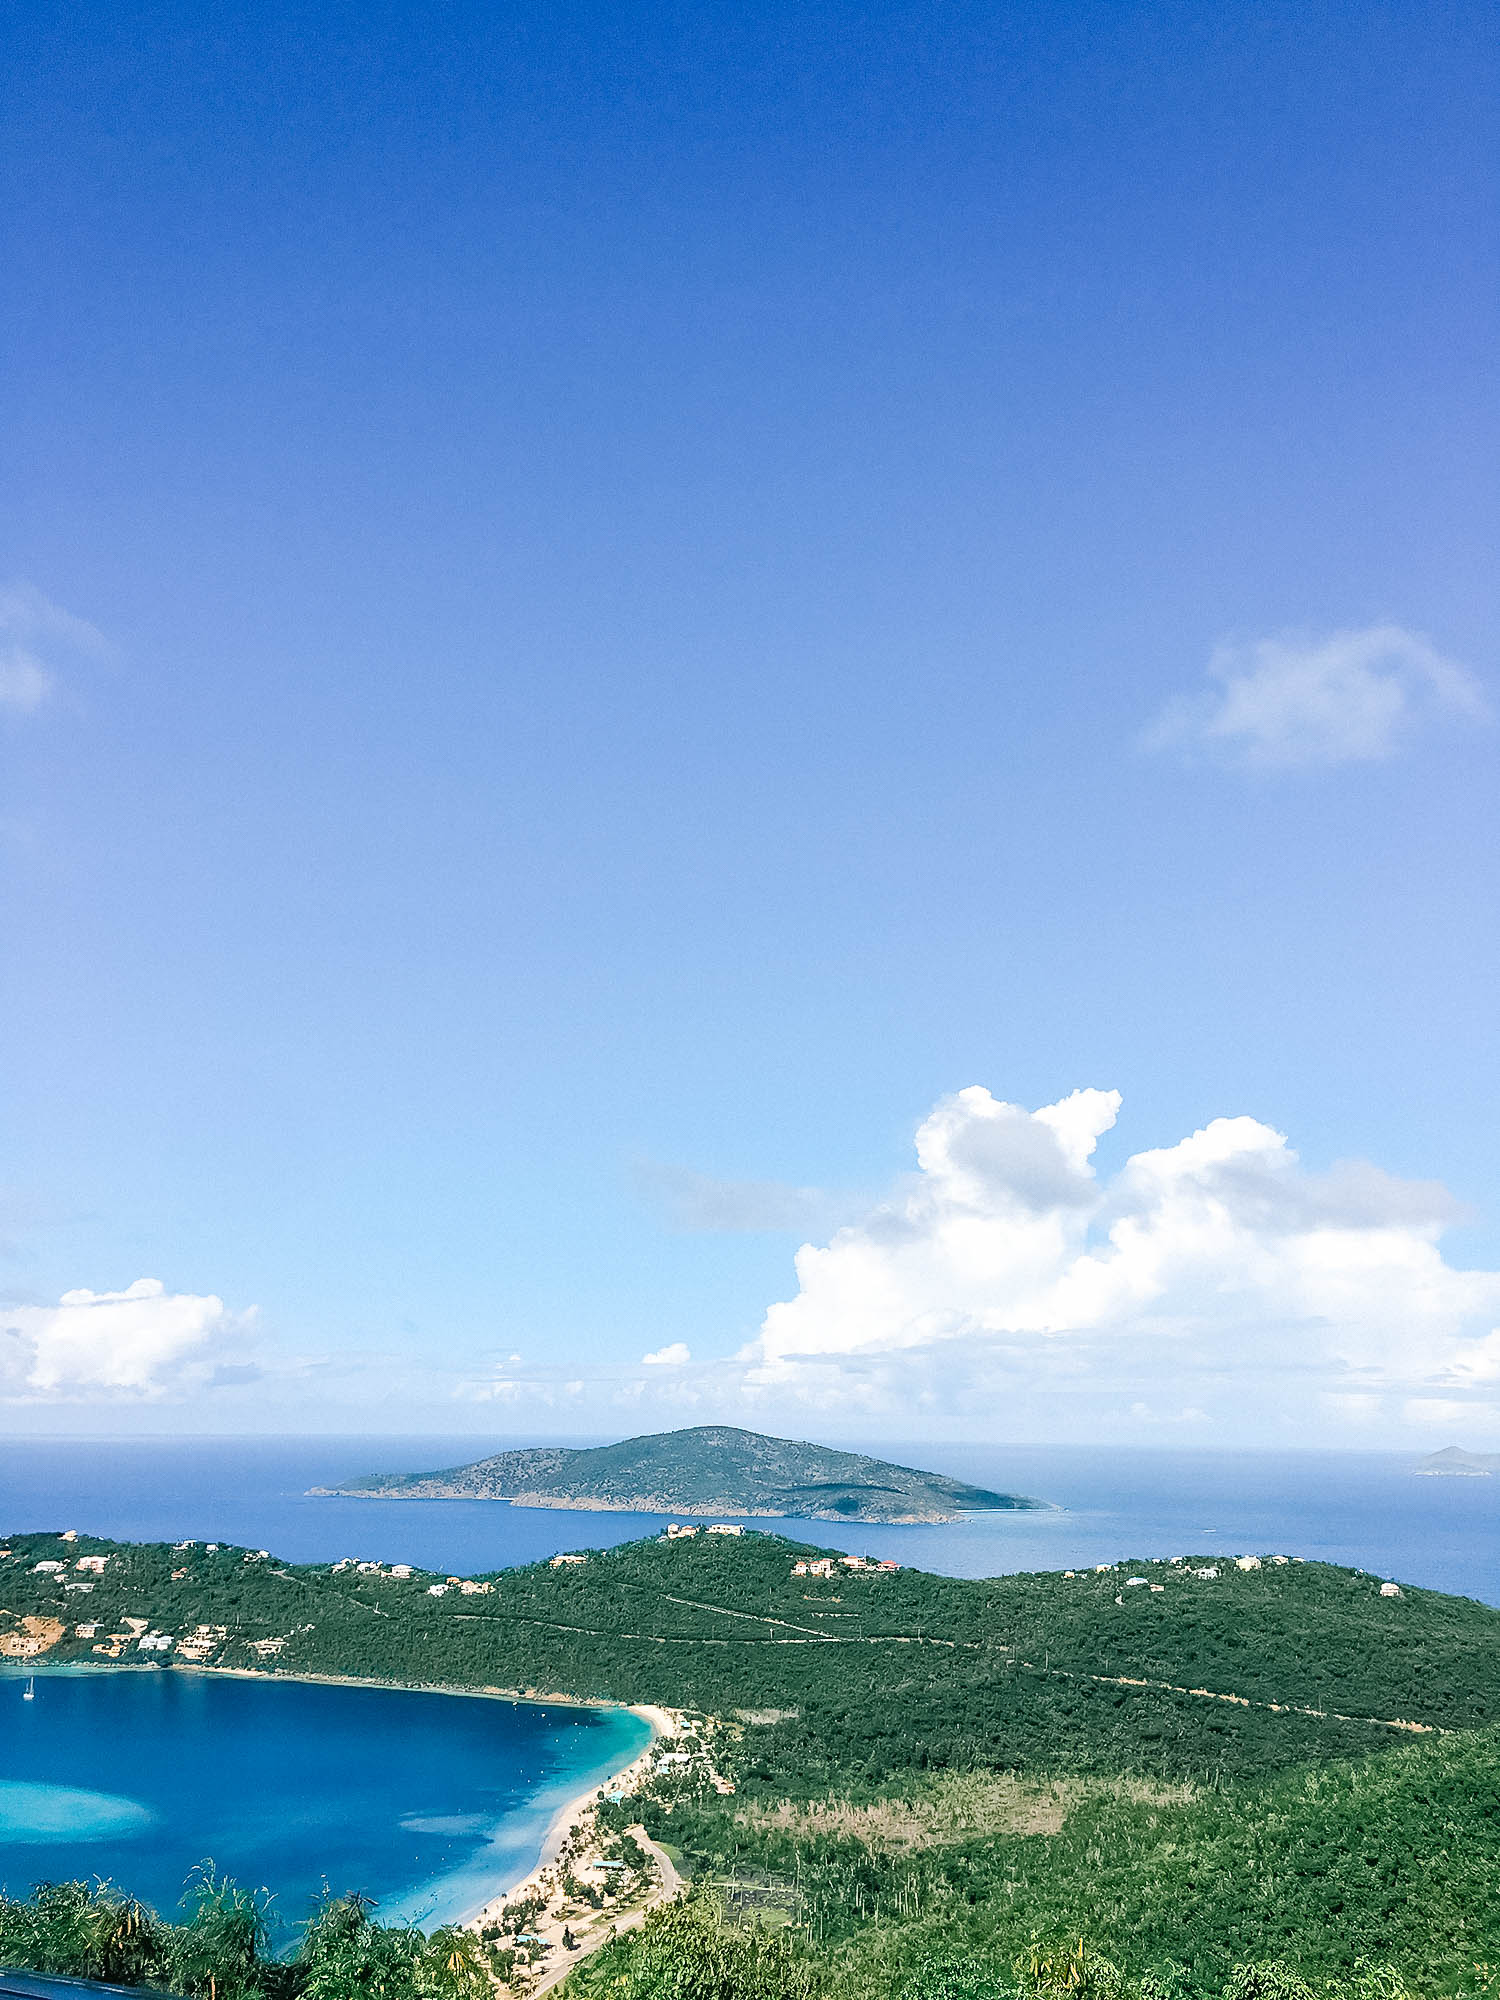 st thomas island view